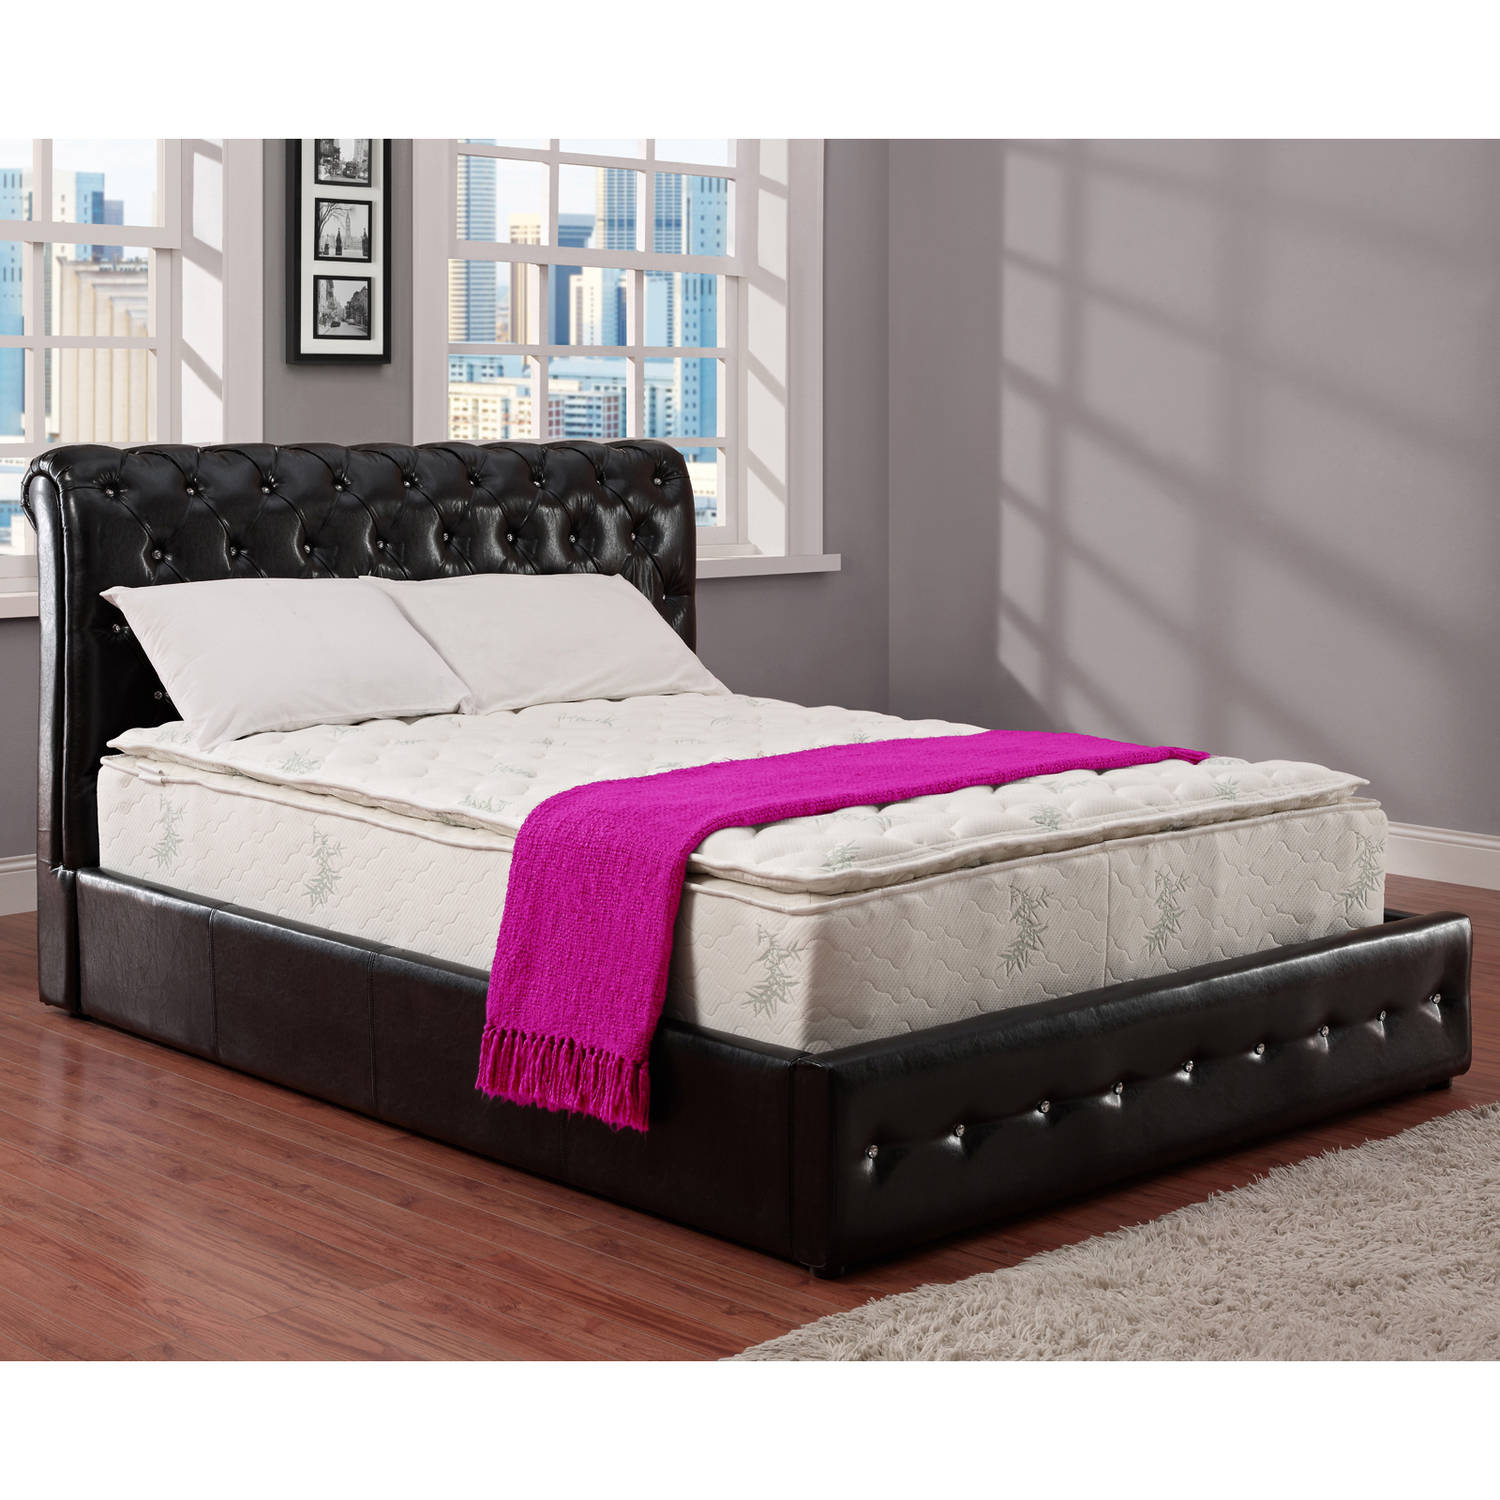 "Signature Sleep - 13"" Independently-Encased Coil Pillow Top Mattress"